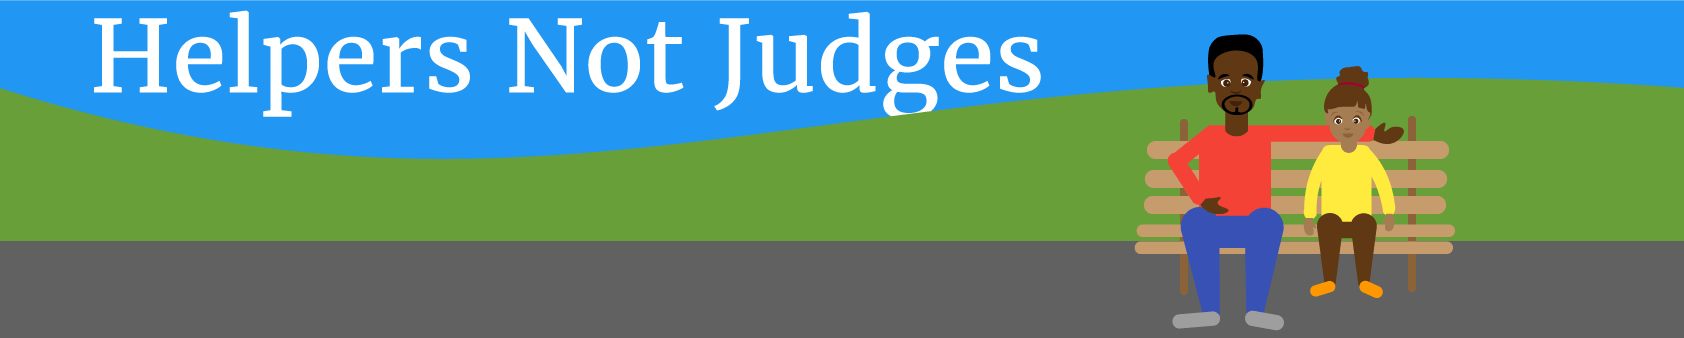 helpers-not-judges